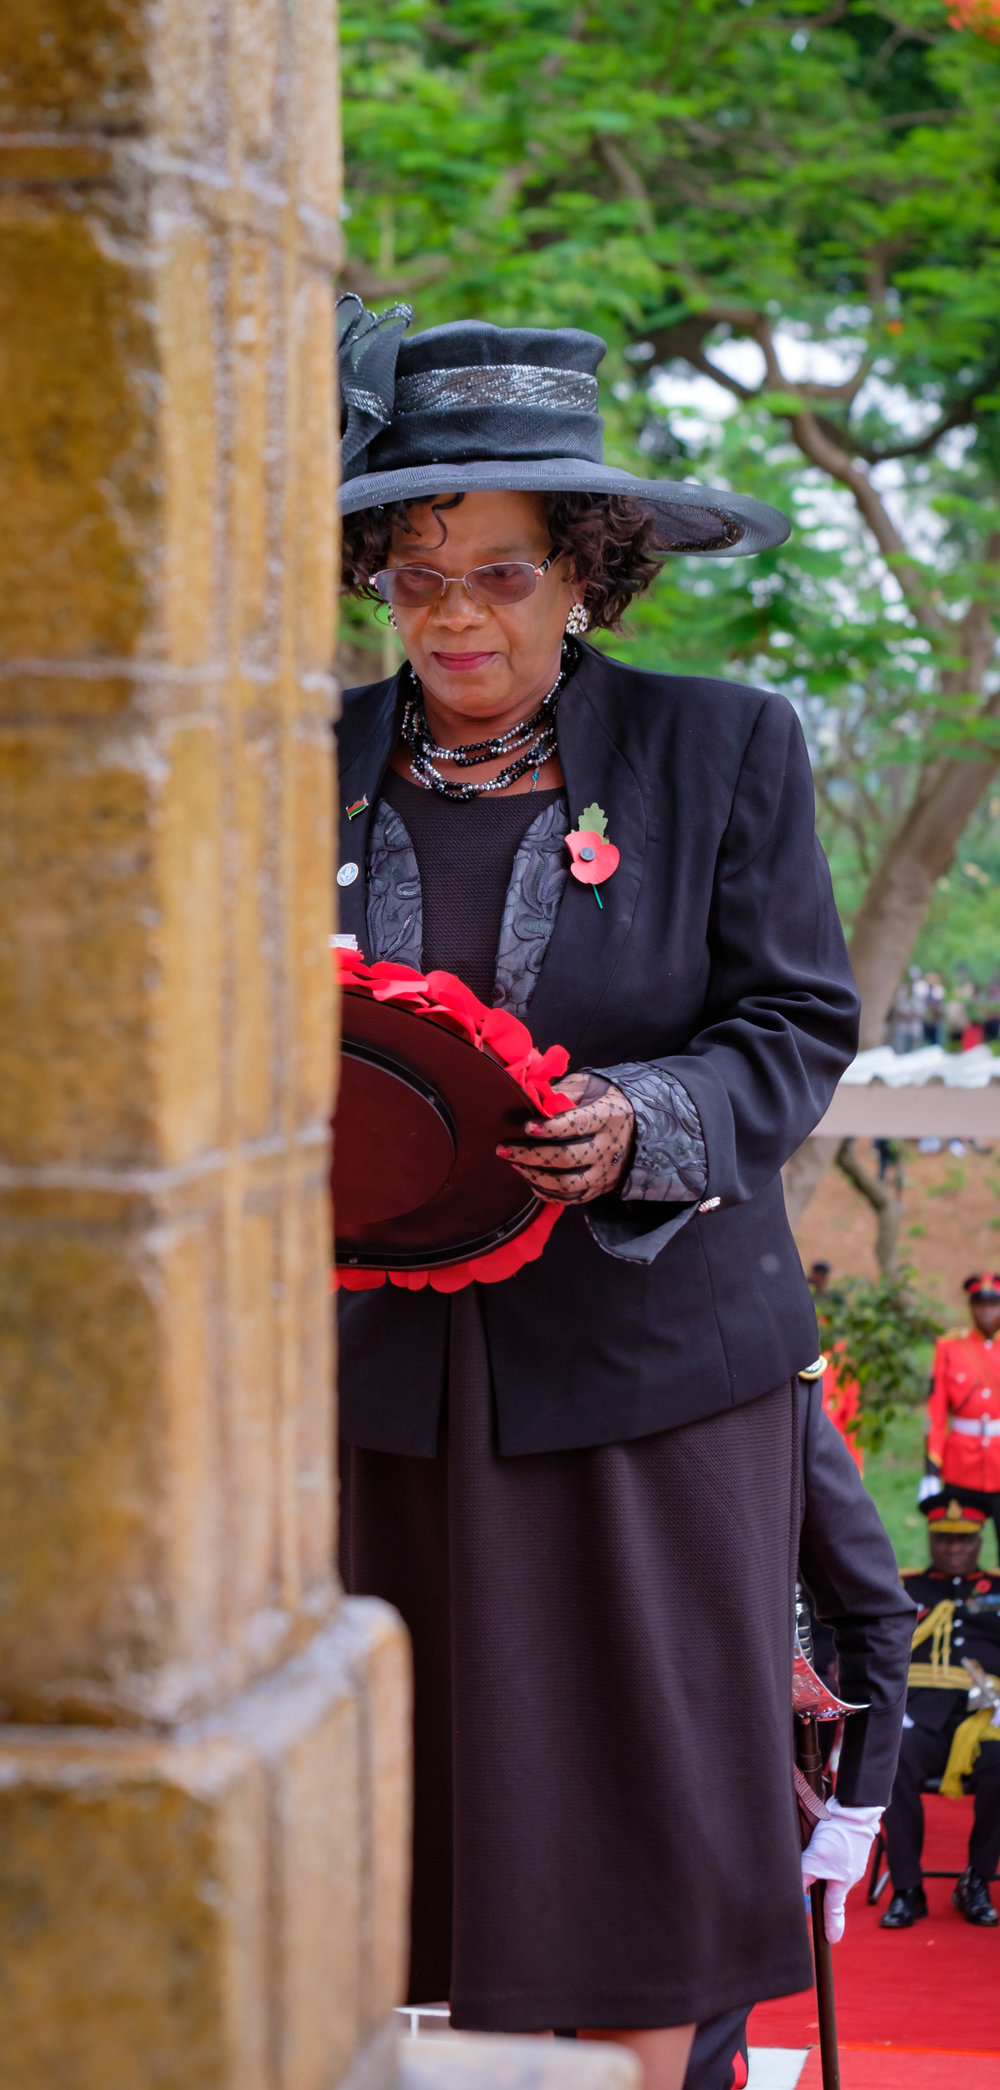 The areas member of parliament laying a wreath.